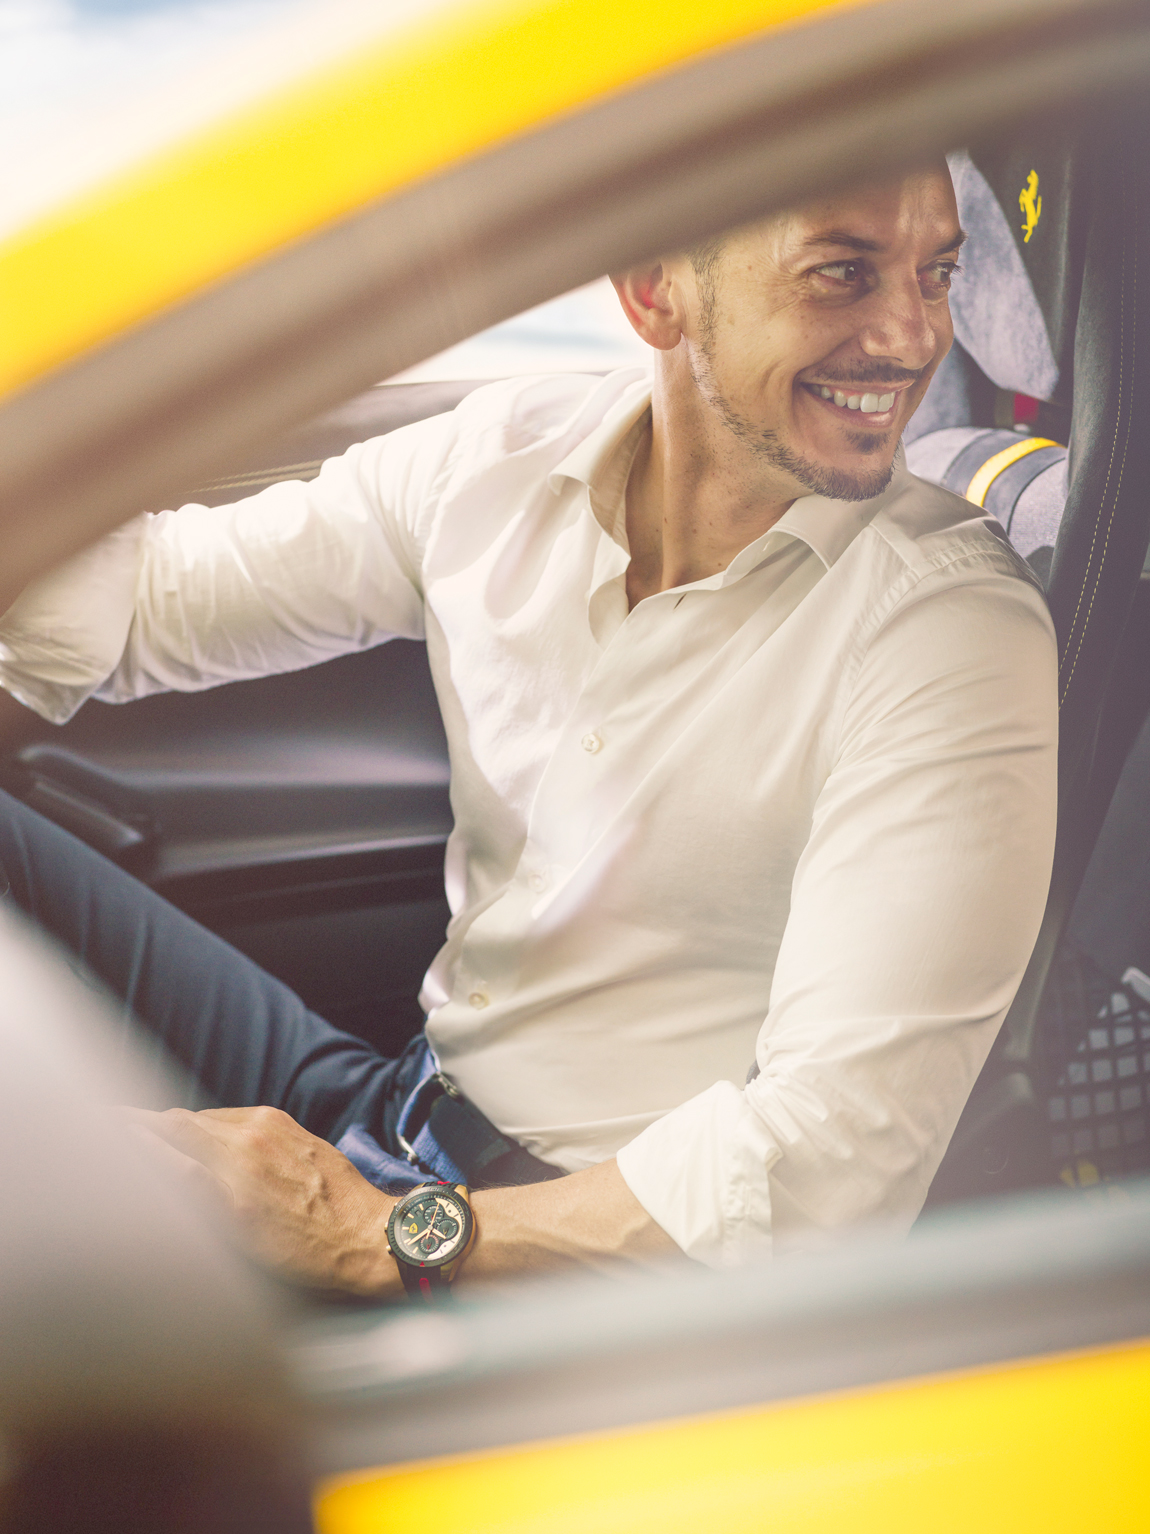 Martin Berry is wearing the Scuderia Ferrari Red Rev Evo watch